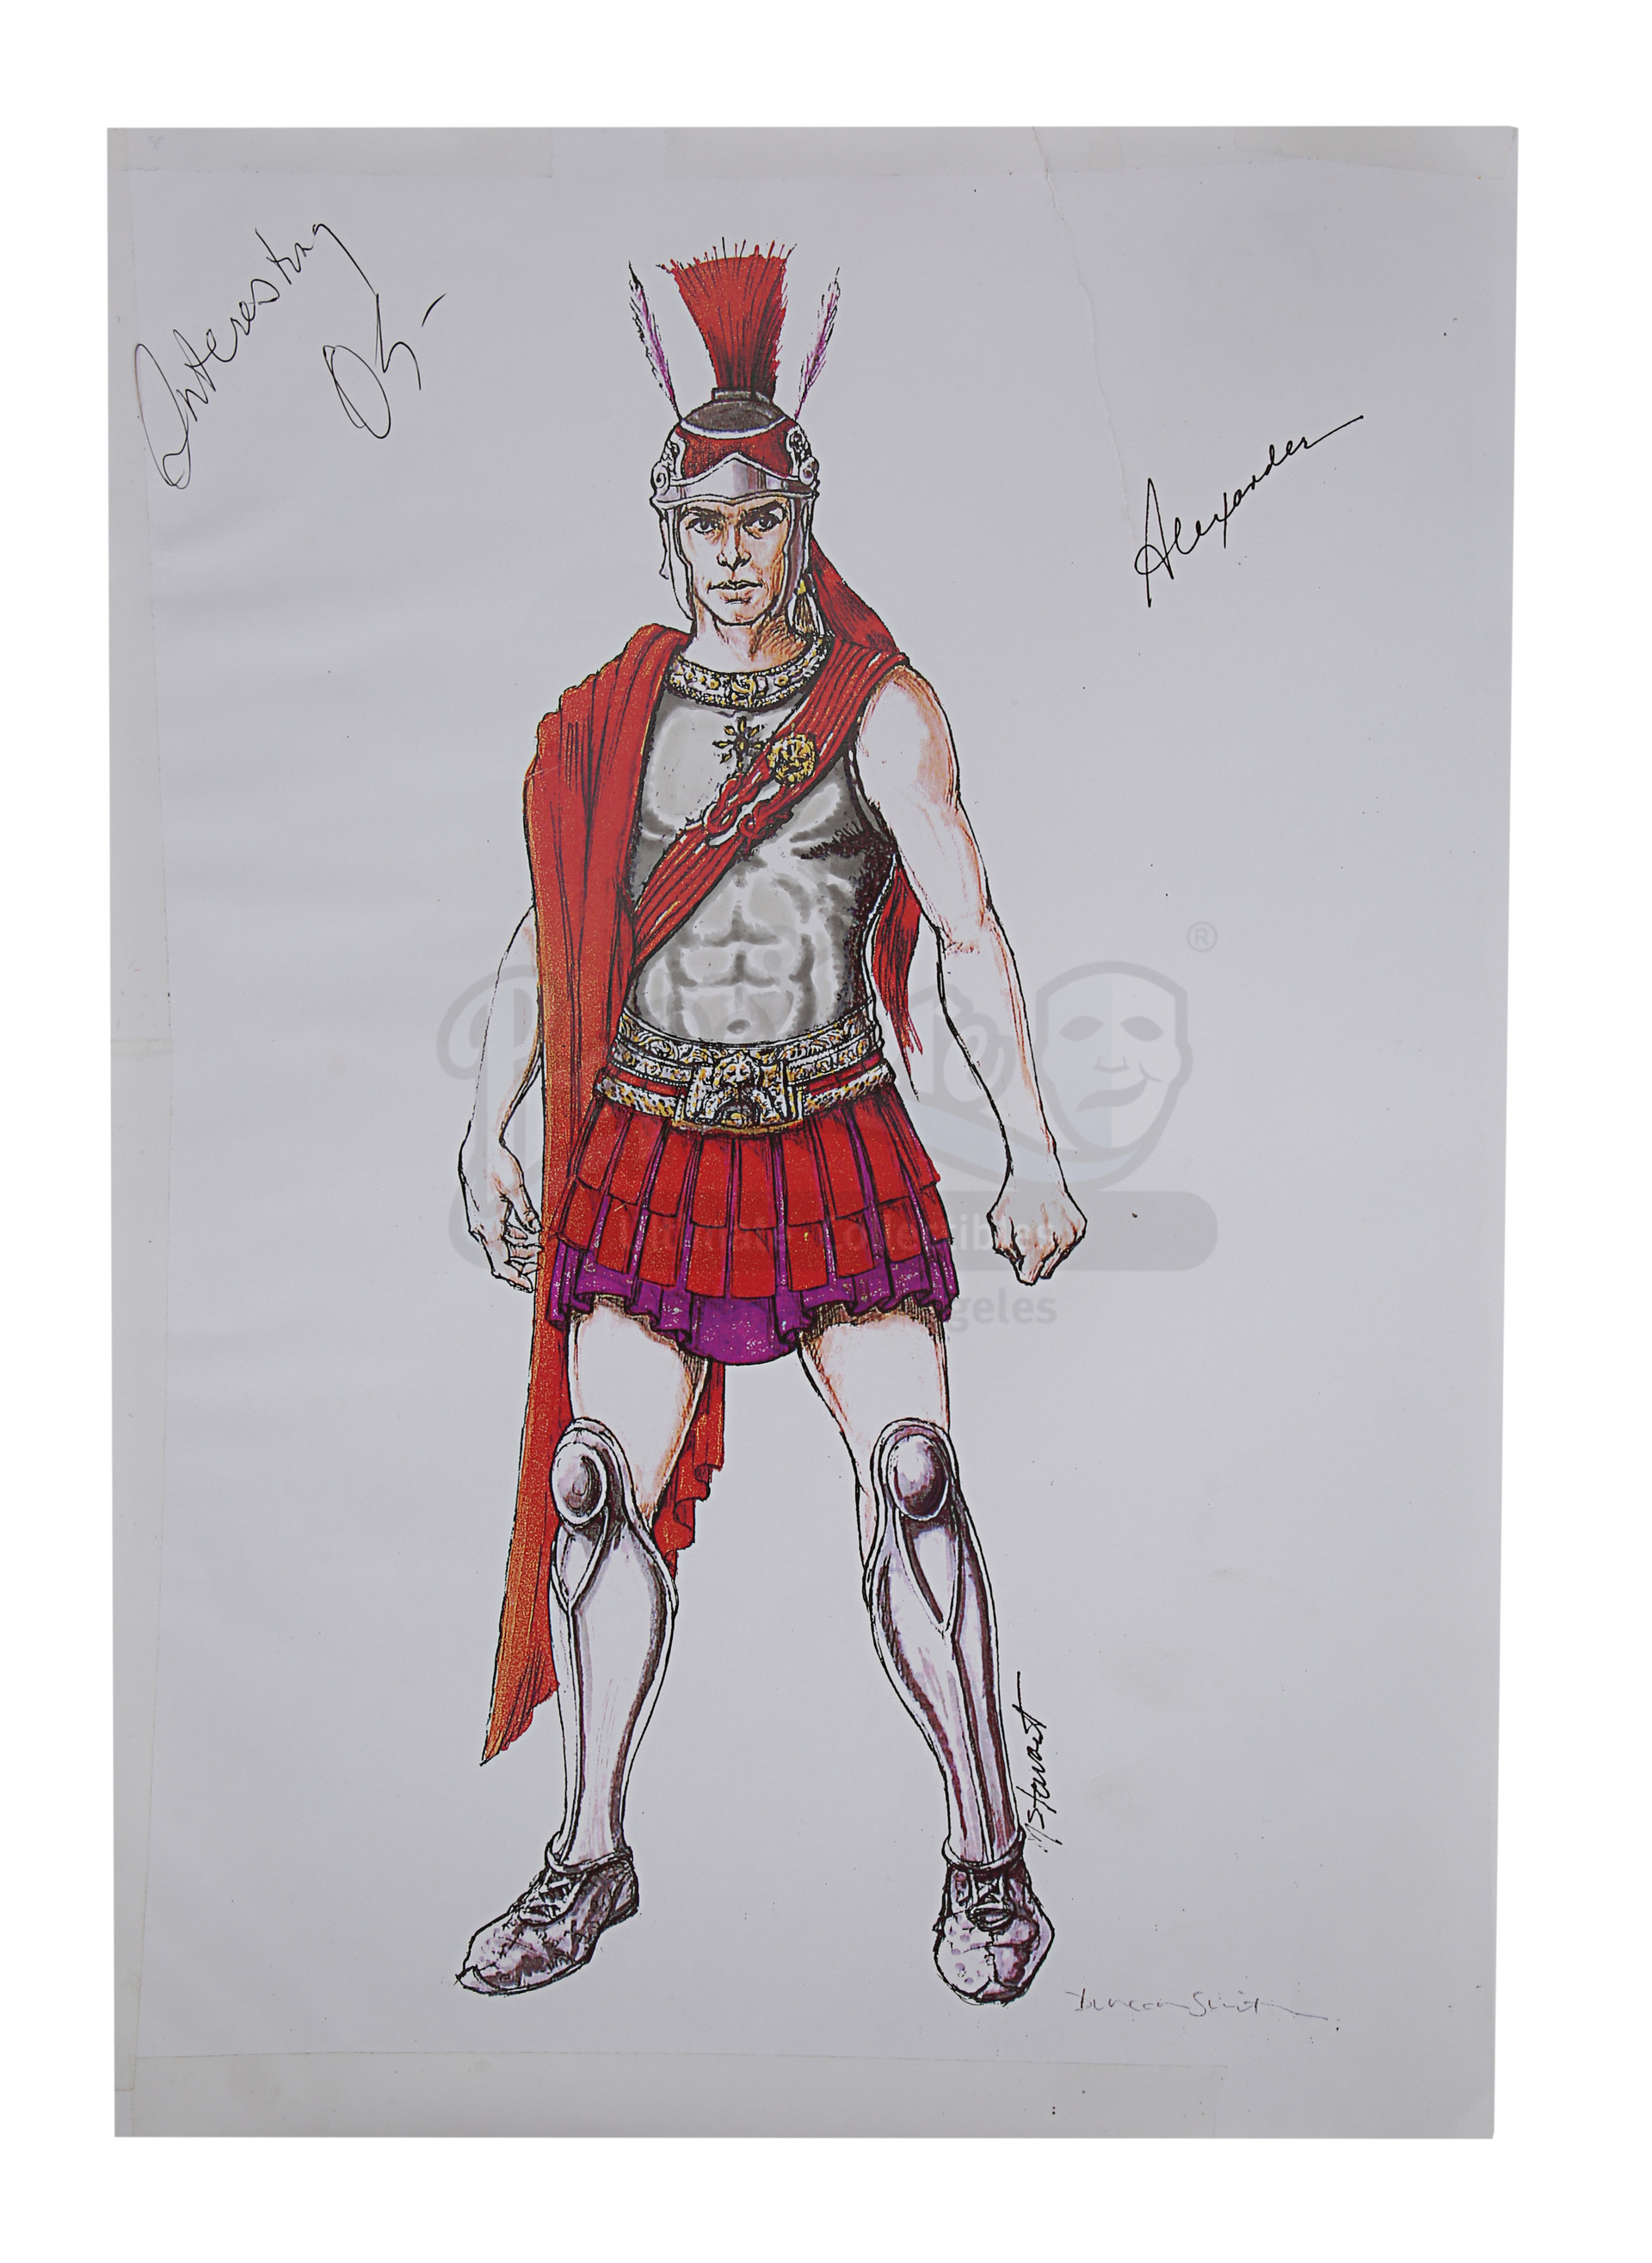 ALEXANDER (2004) - Hand-Drawn Alexander (Colin Farrell) Costume Sketches, Printed Character Concept - Image 2 of 10